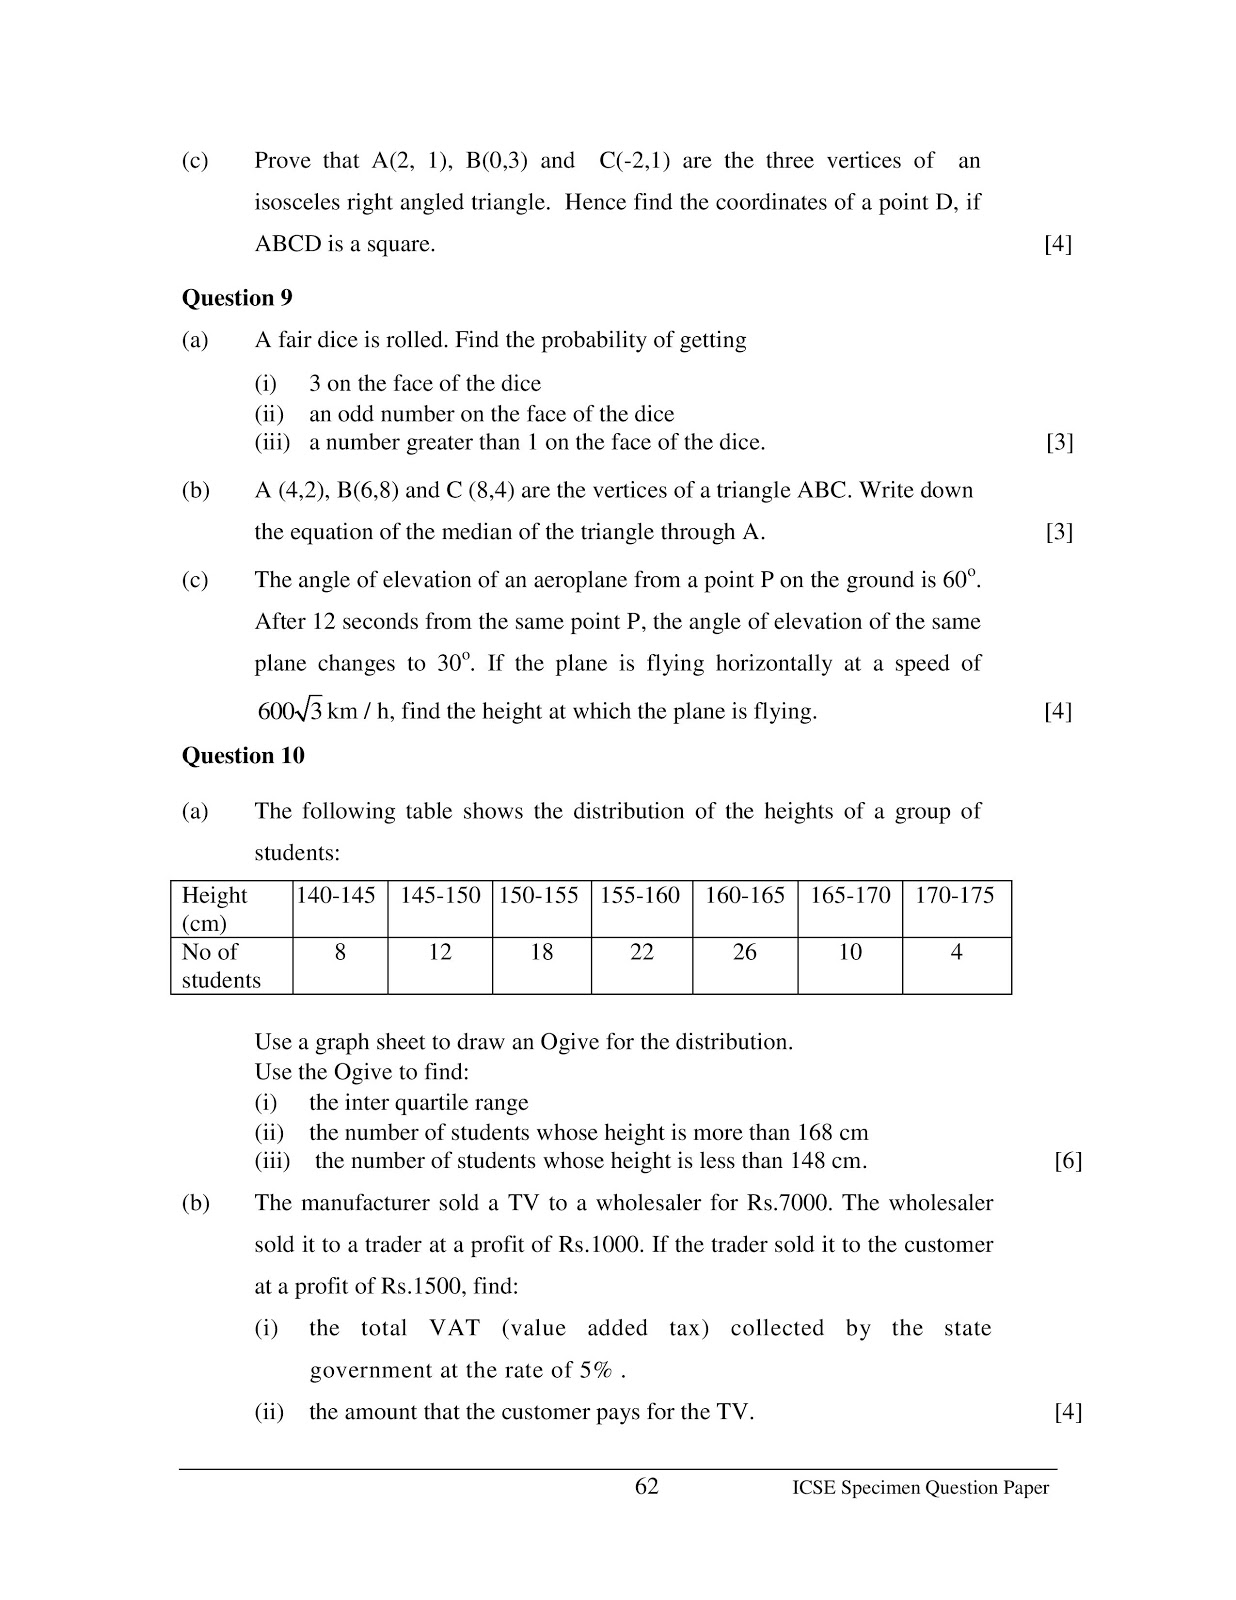 icse 2017 class 10th Mathematics specimen question paper